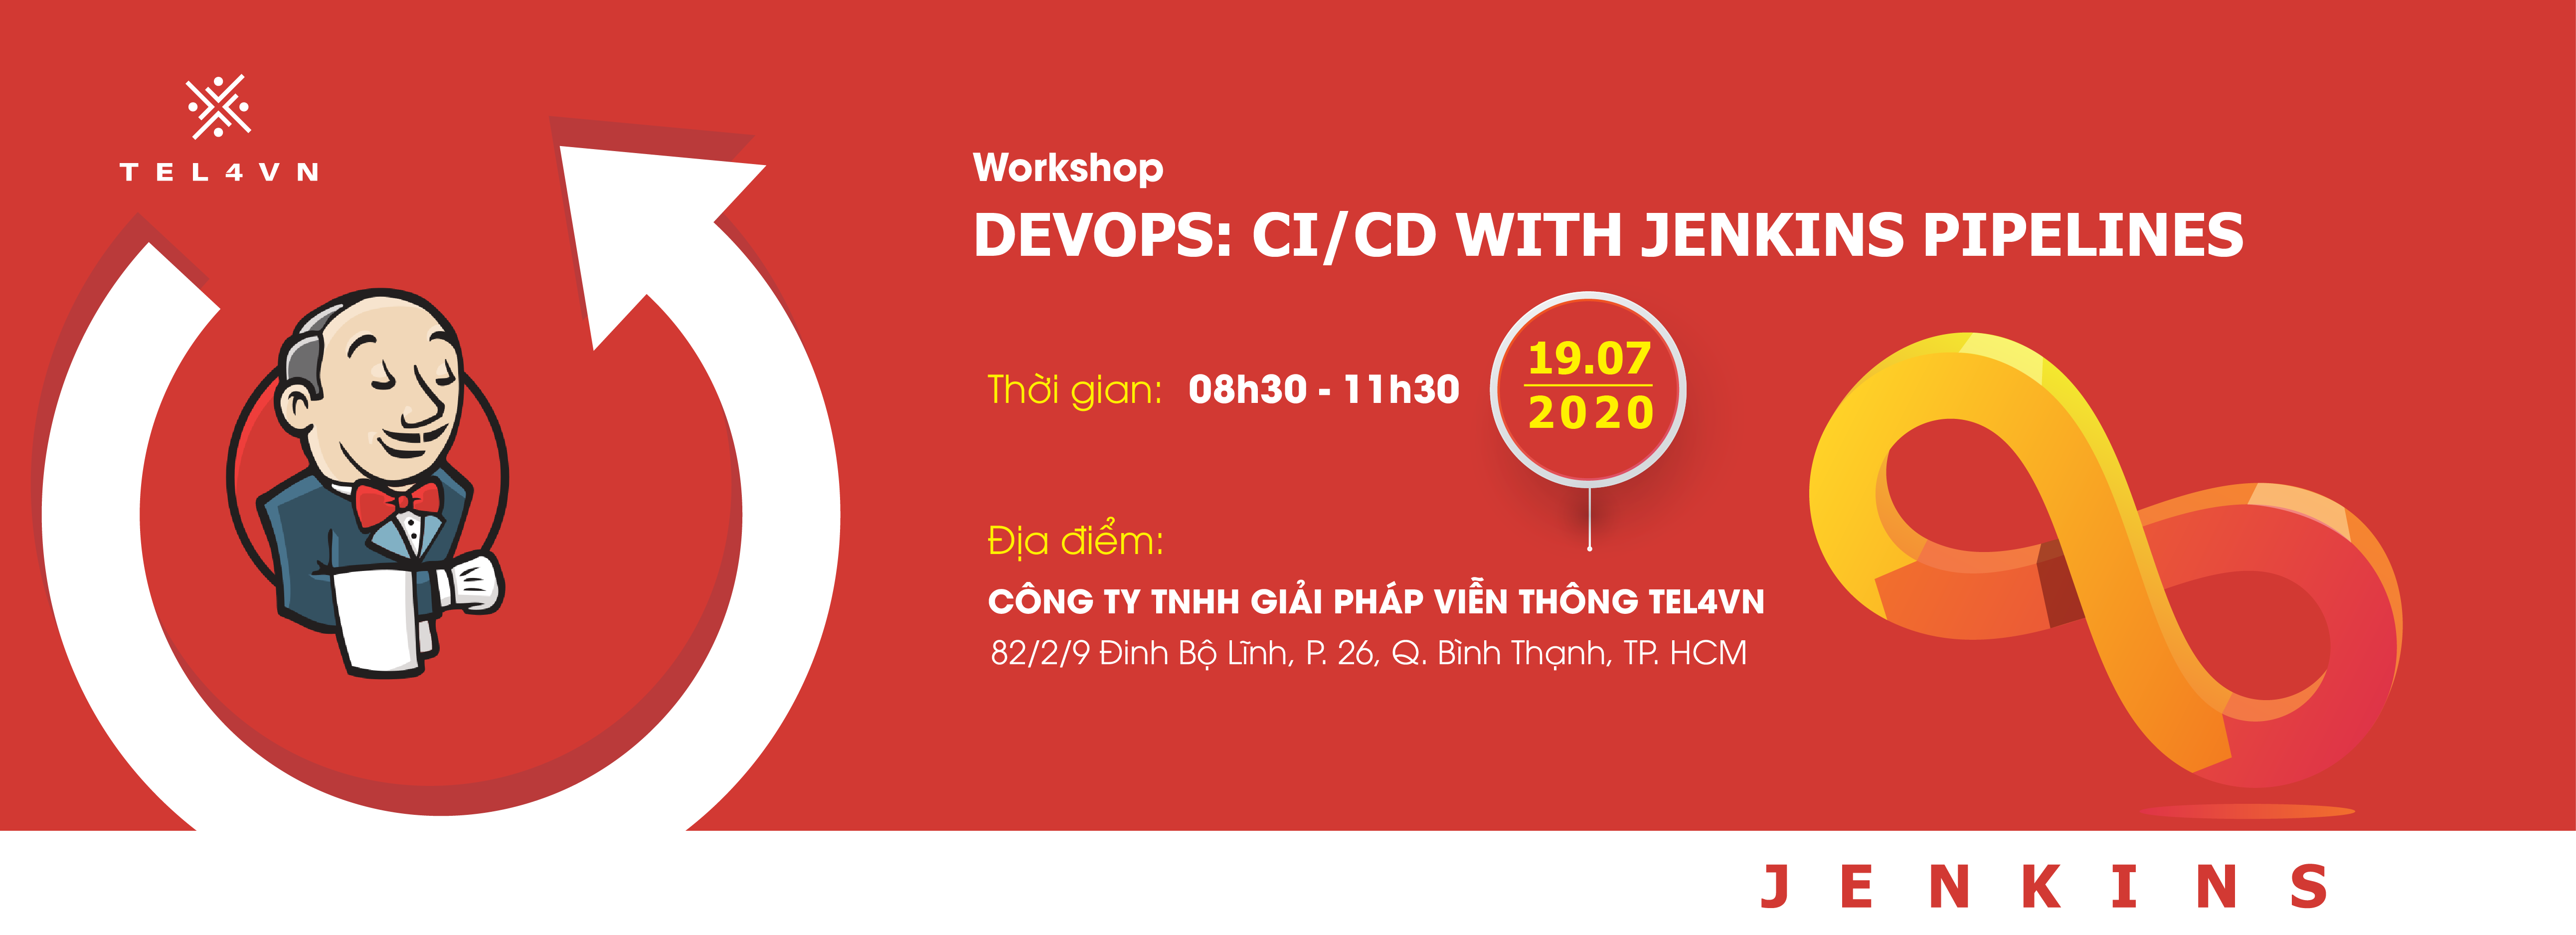 Workshop DevOps: CI/CD with Jenkins pipelines